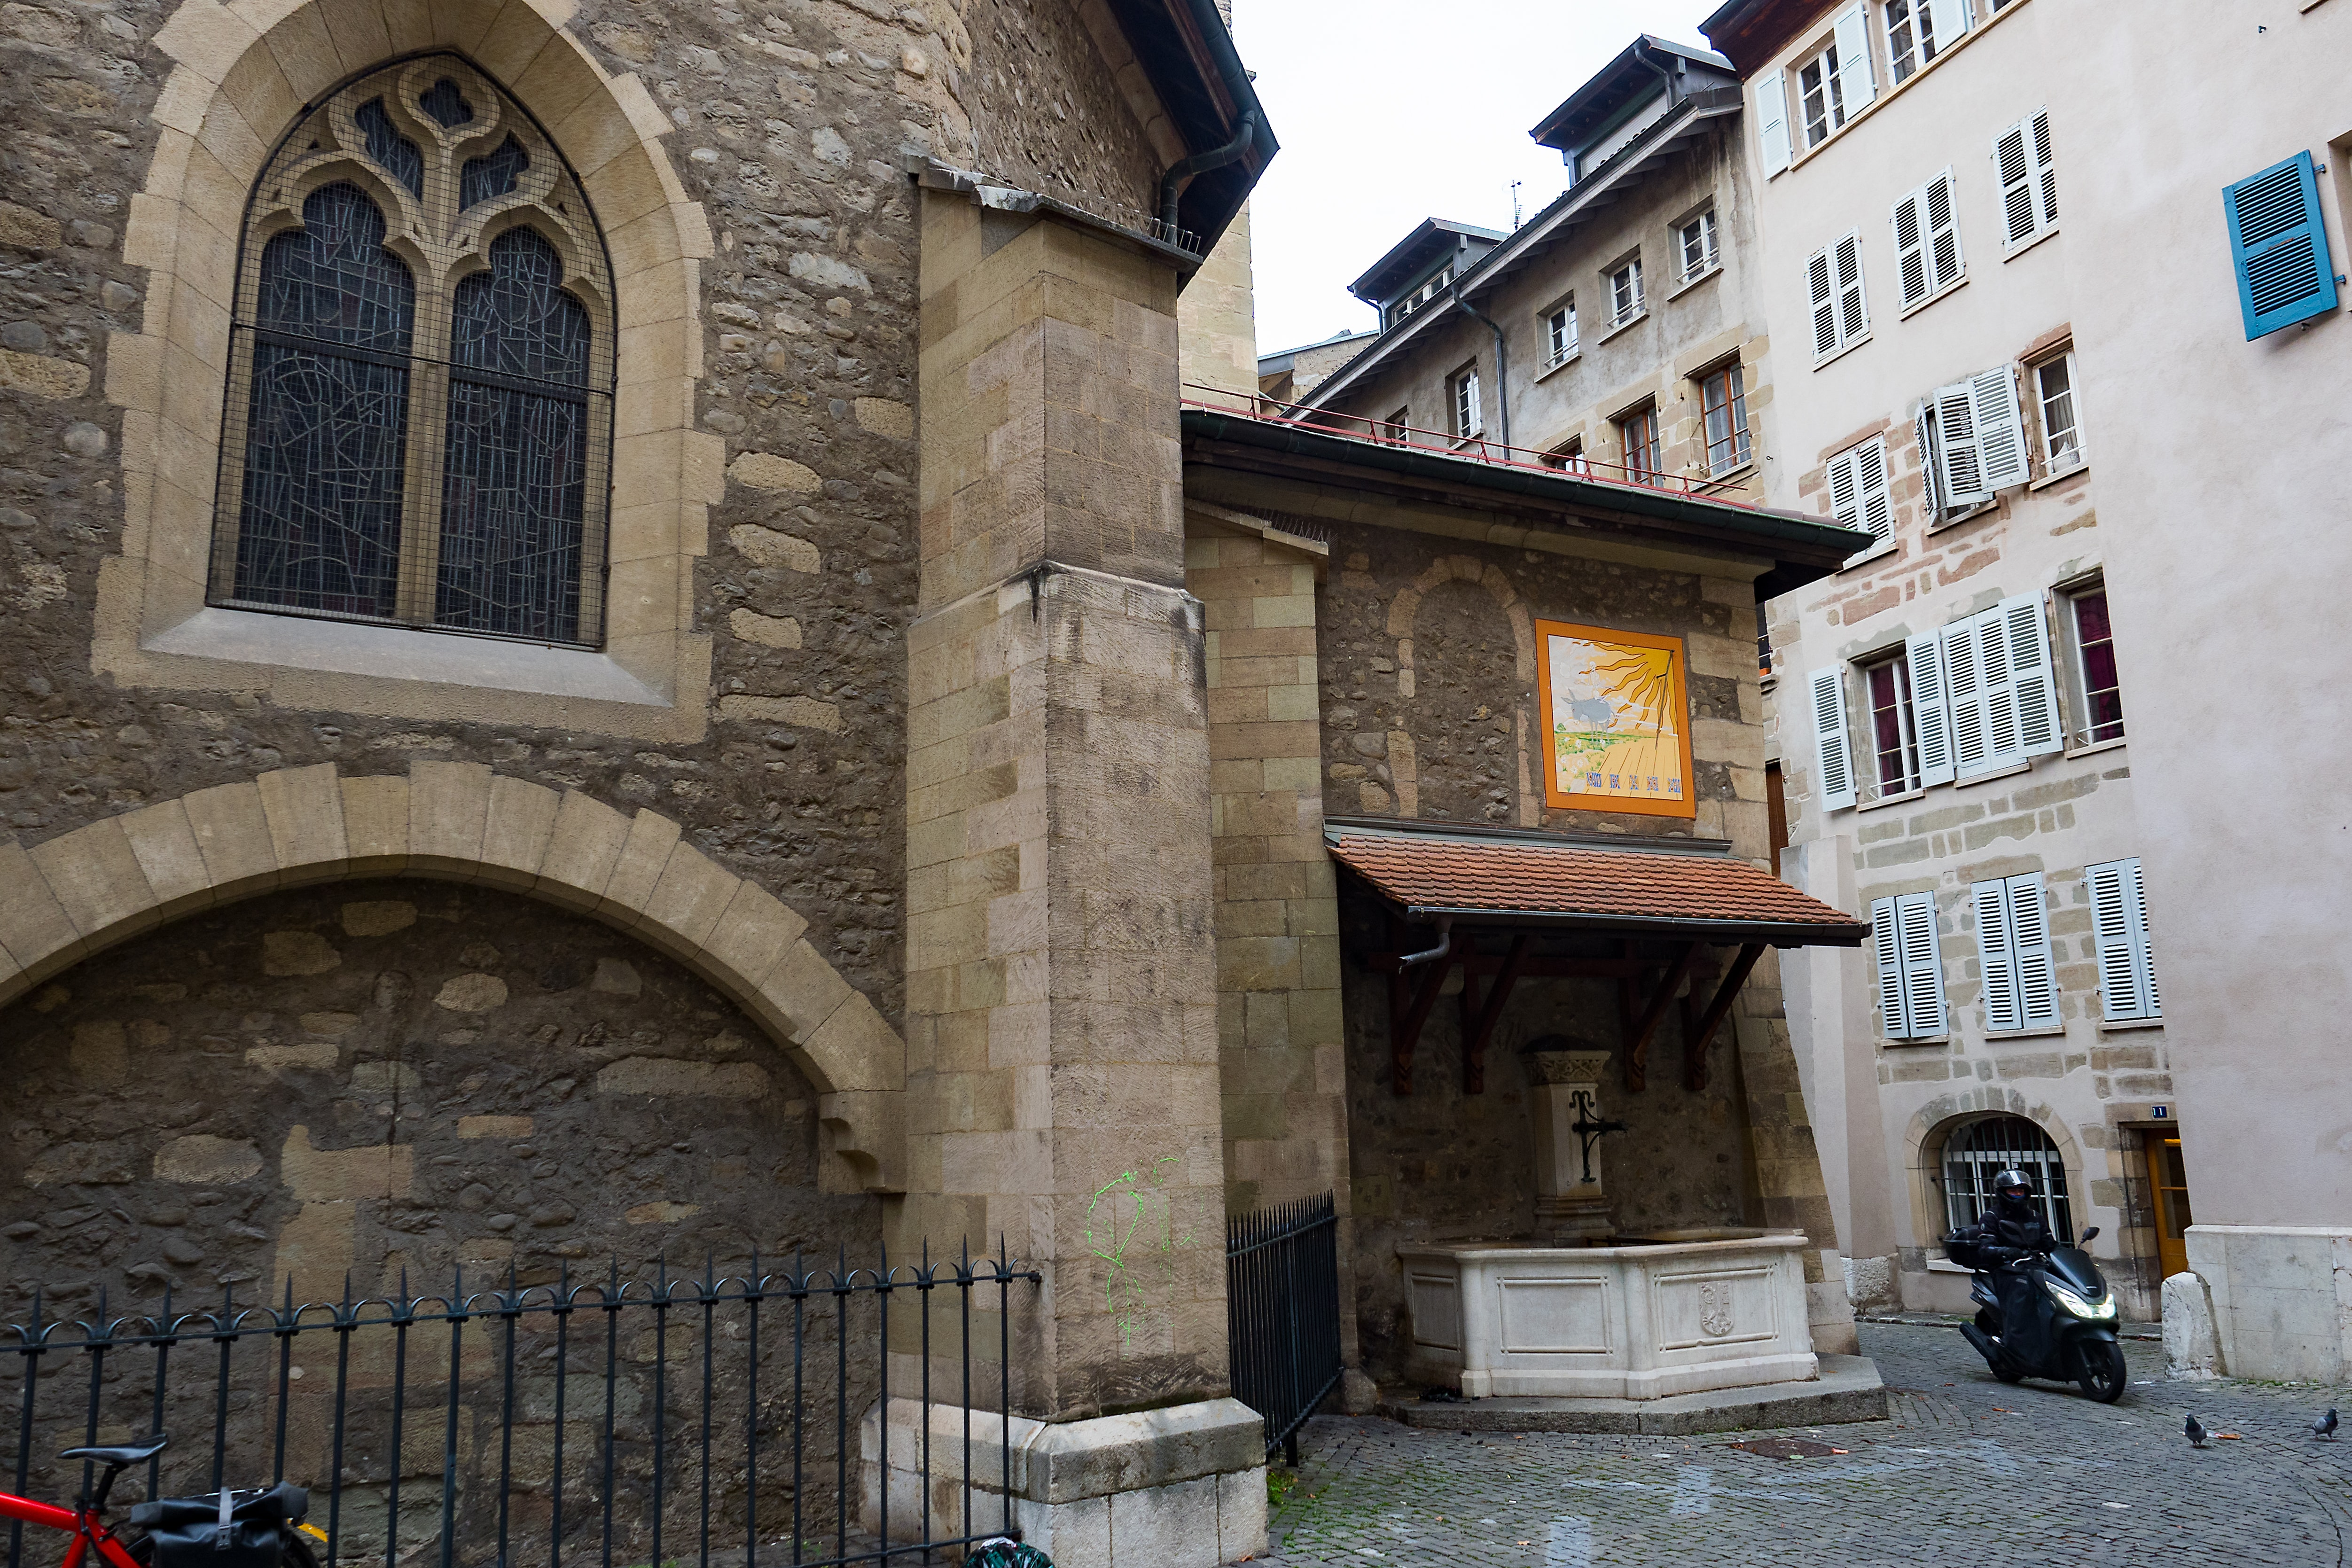 Dispatches: Public Clocks And Sundials In Geneva (Including That Church Clock Rolex Has Been Winding For 77 Years) Dispatches: Public Clocks And Sundials In Geneva (Including That Church Clock Rolex Has Been Winding For 77 Years) PB064027